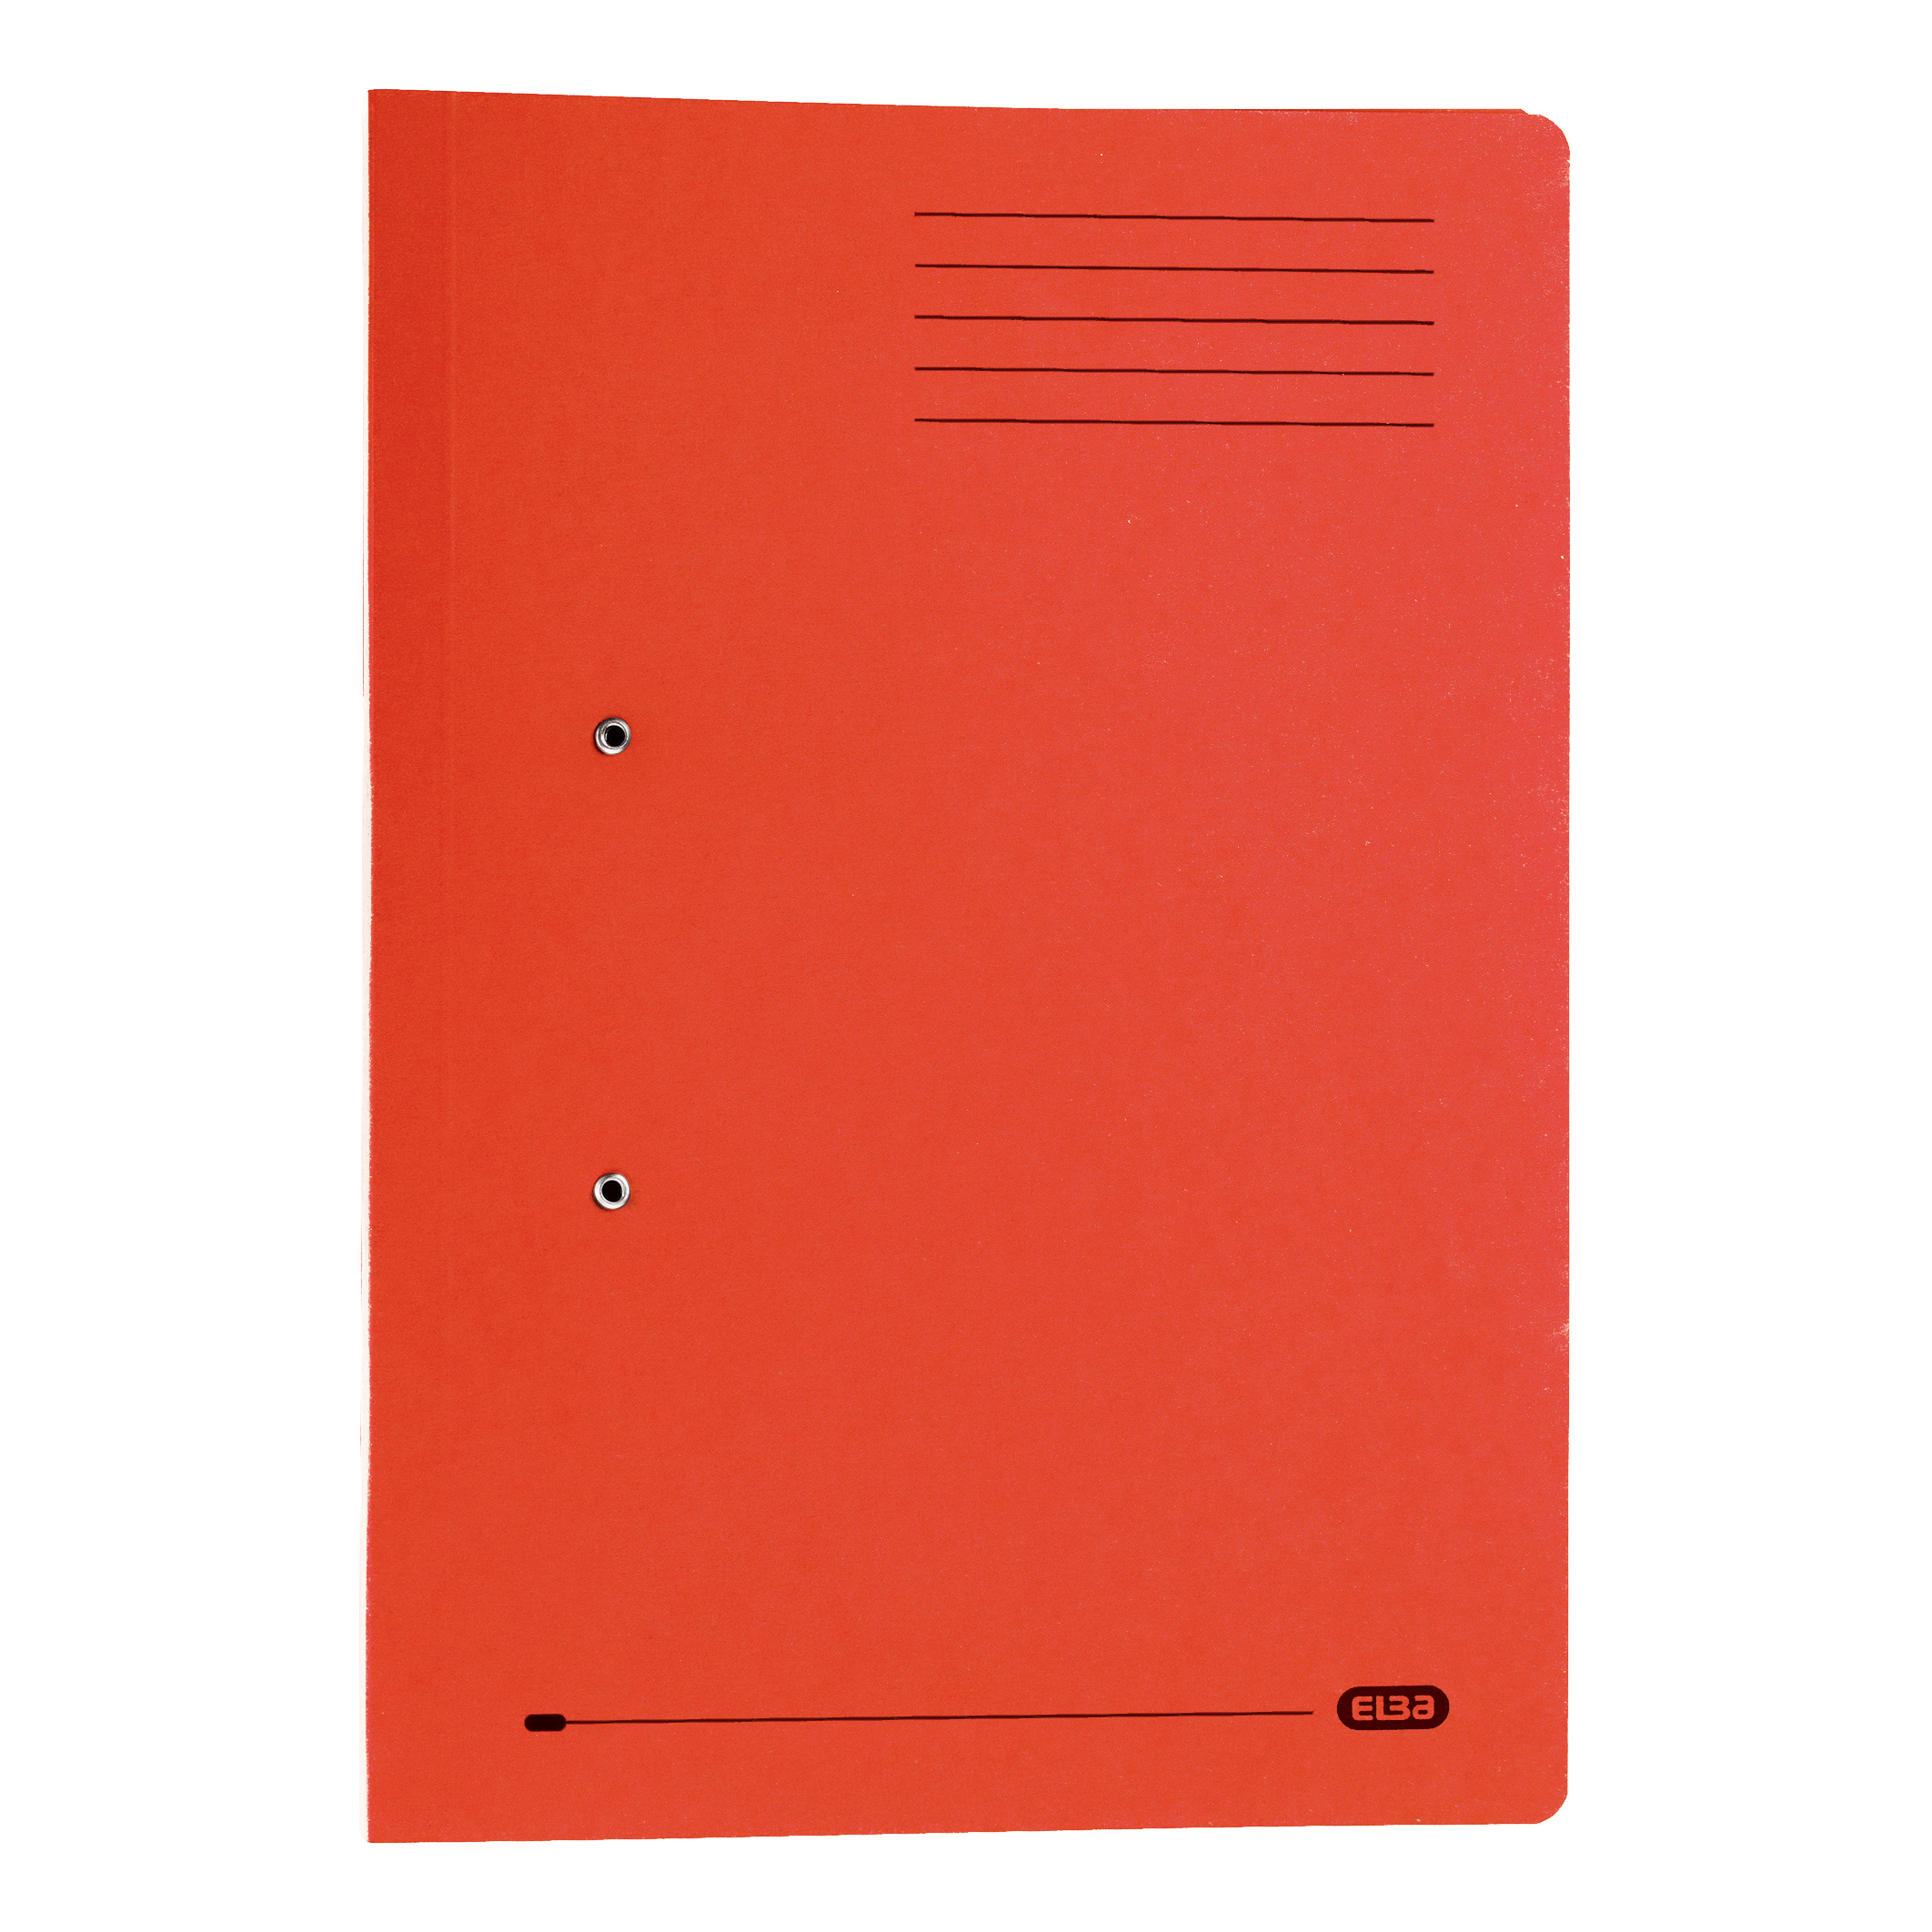 Elba StrongLine Transfer Spring File Recycled 320gsm Foolscap Red Ref 100090278 Pack 25 REDEMPTION